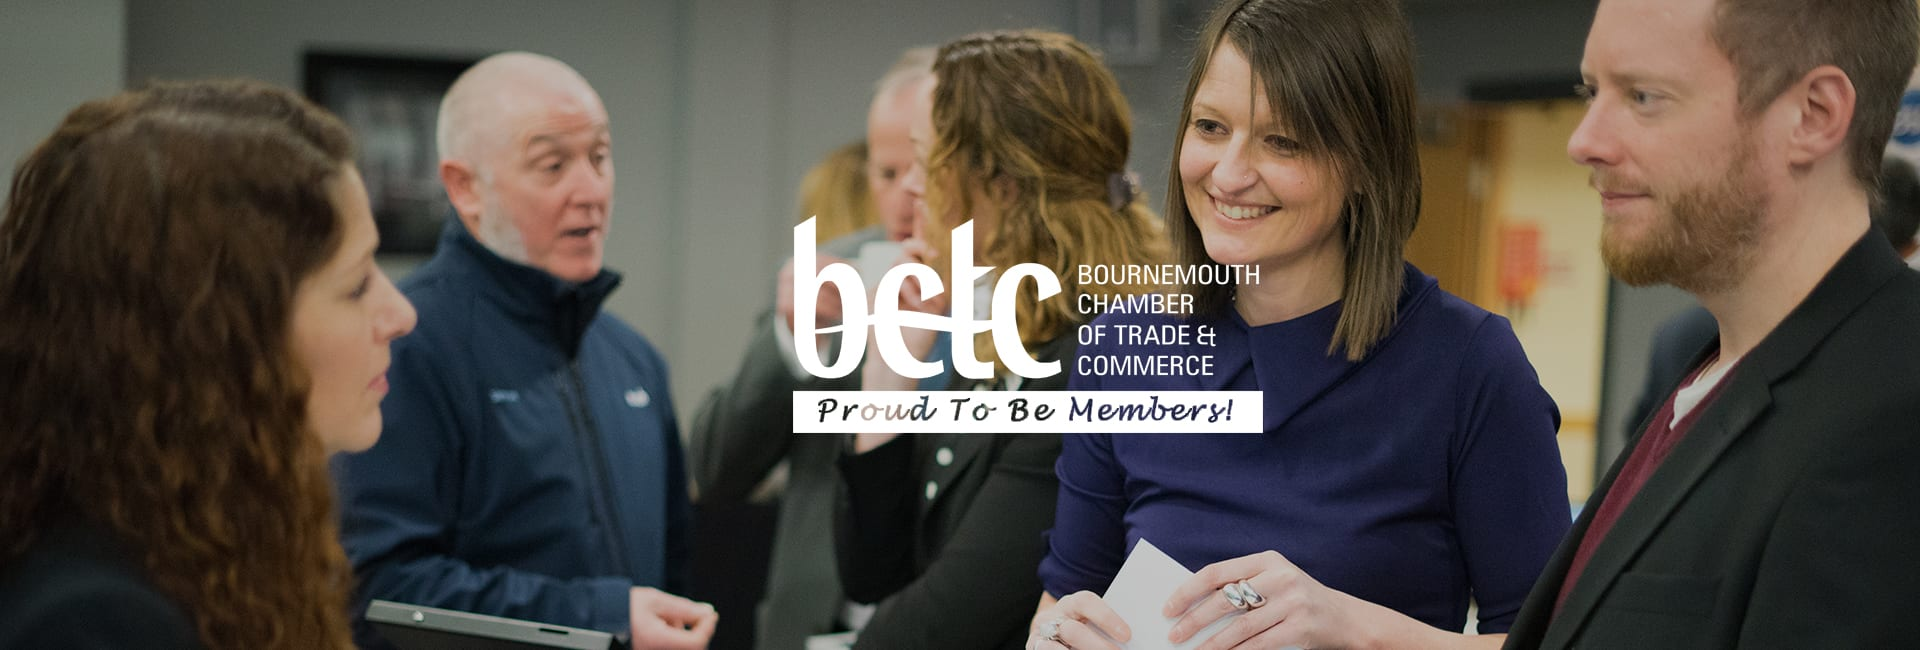 Excited to join the Bournemouth Chamber!